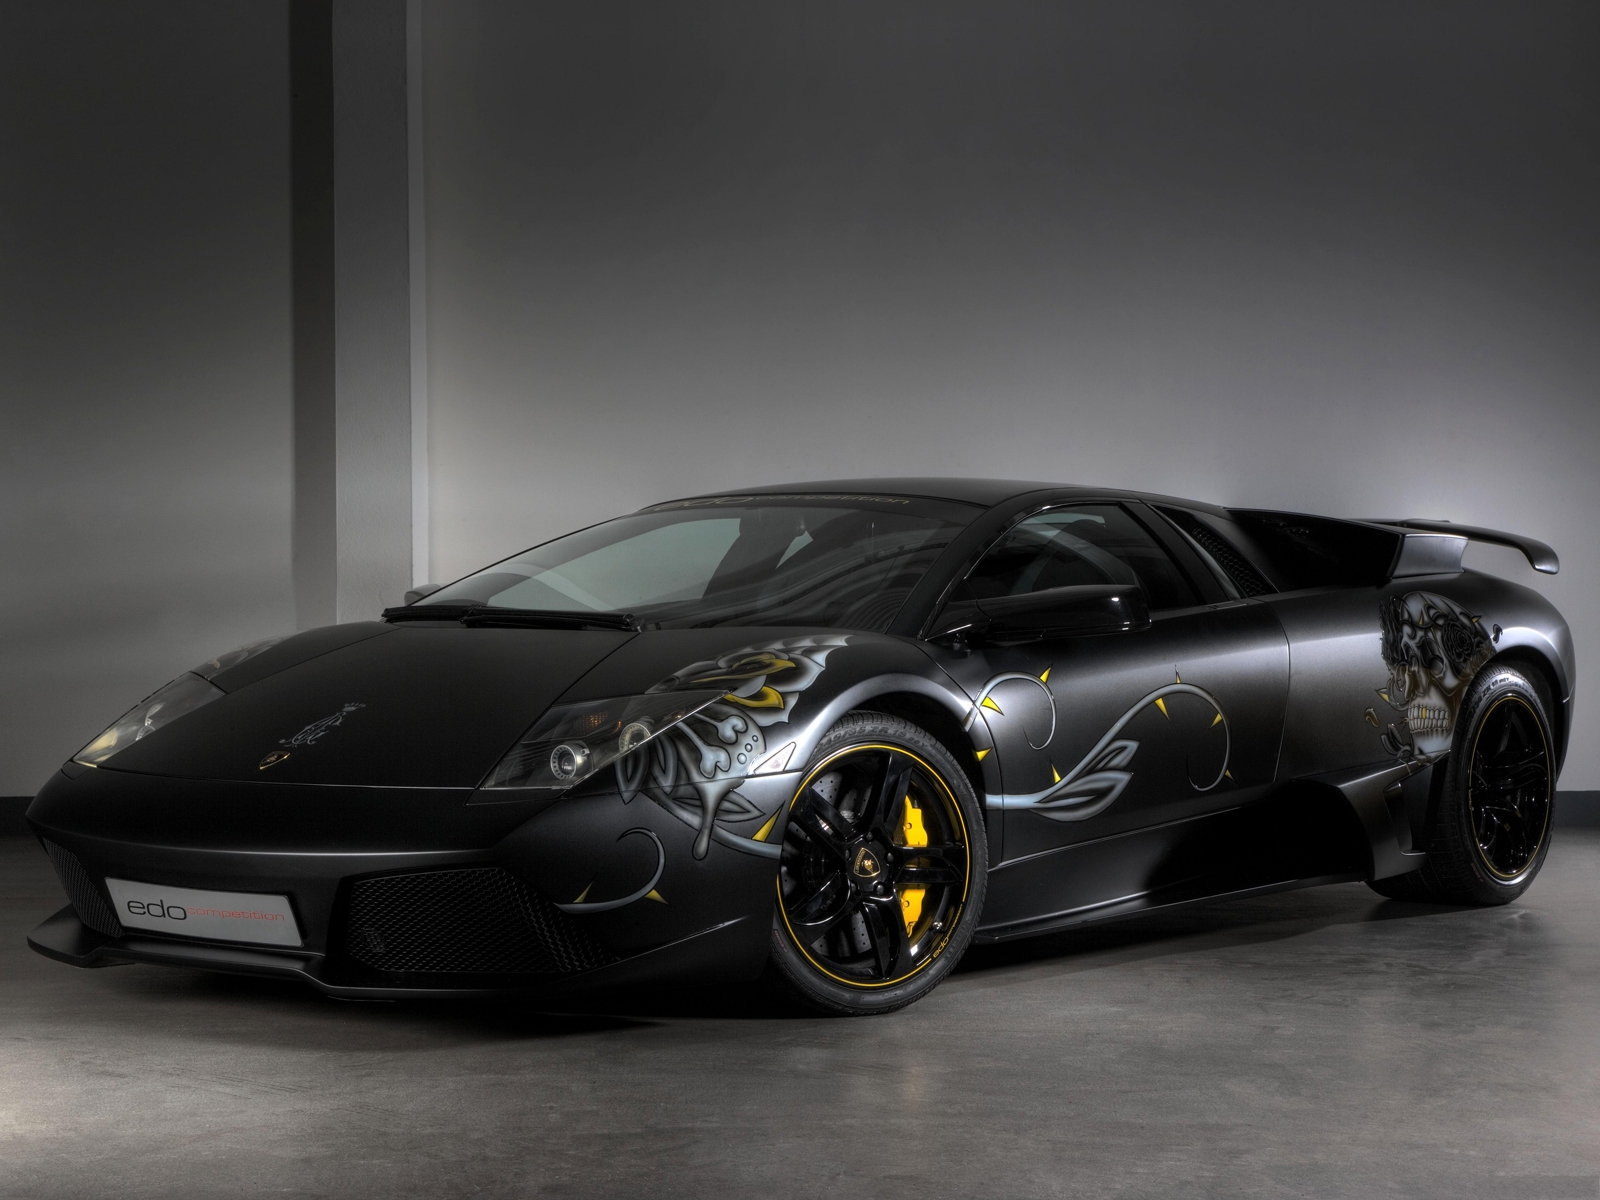 Luxury Lamborghini Cars Black Lamborghini Murcielago Wallpaper